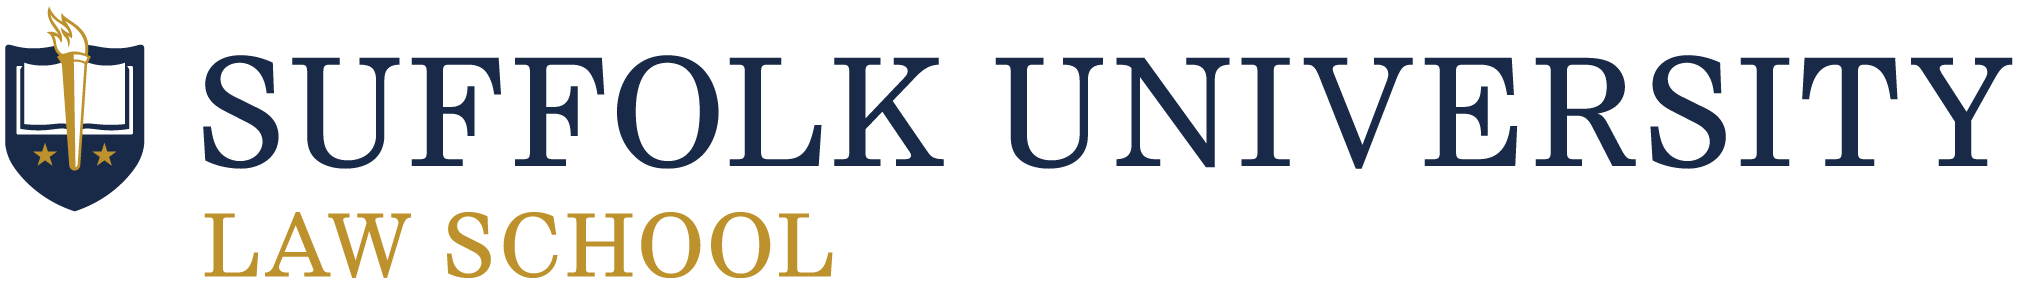 suffolk law logo